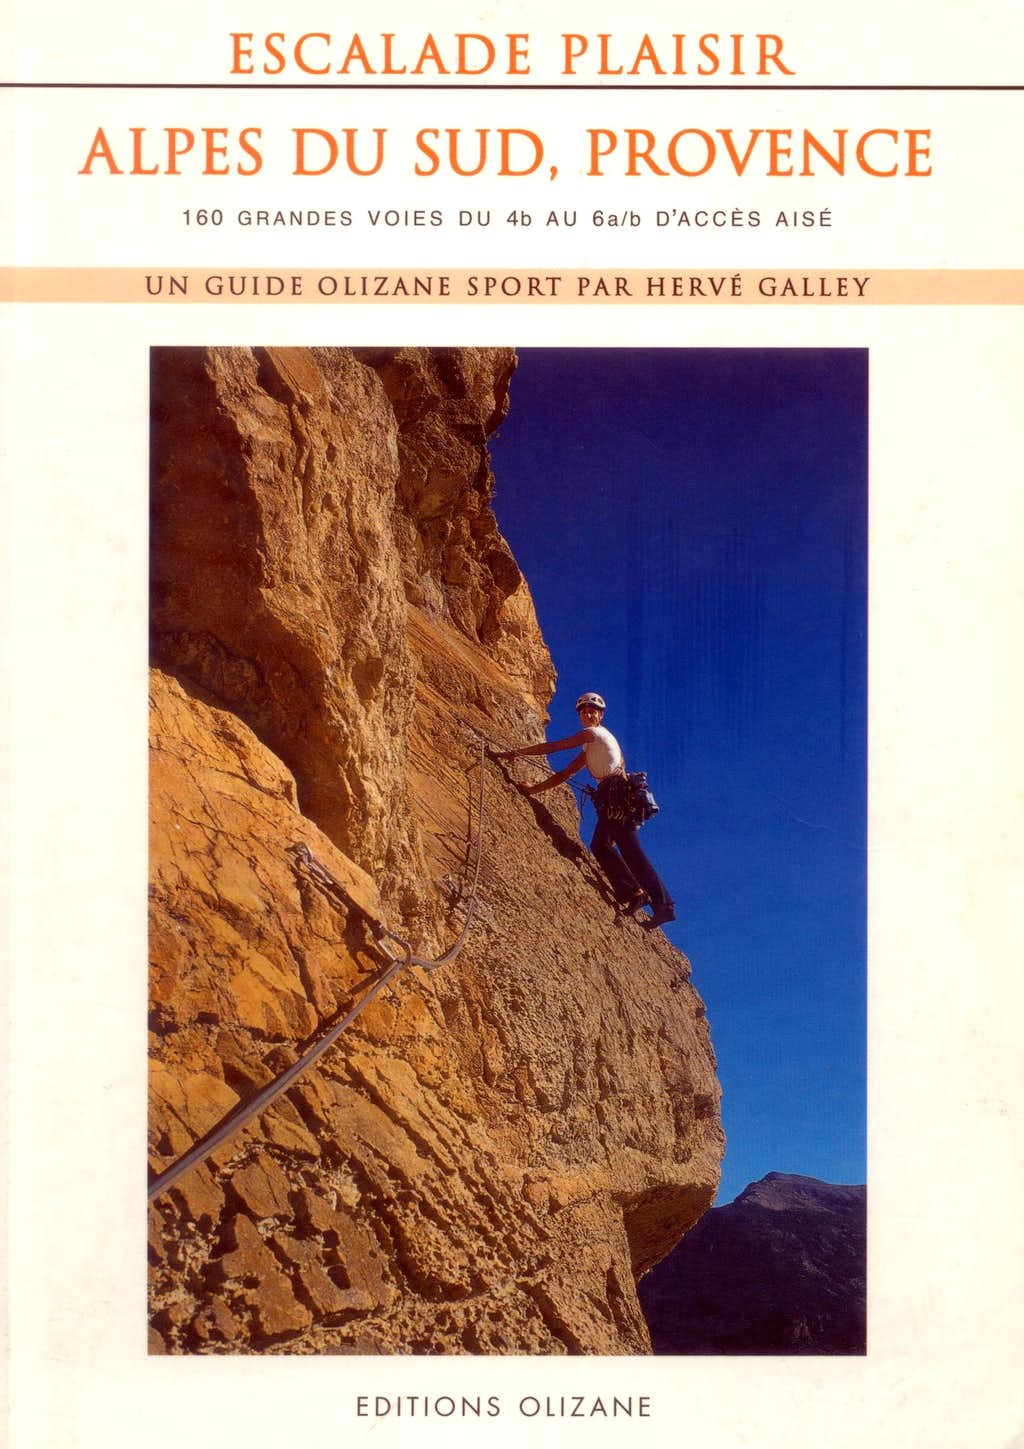 Alpes du Sud and Provence Guidebook